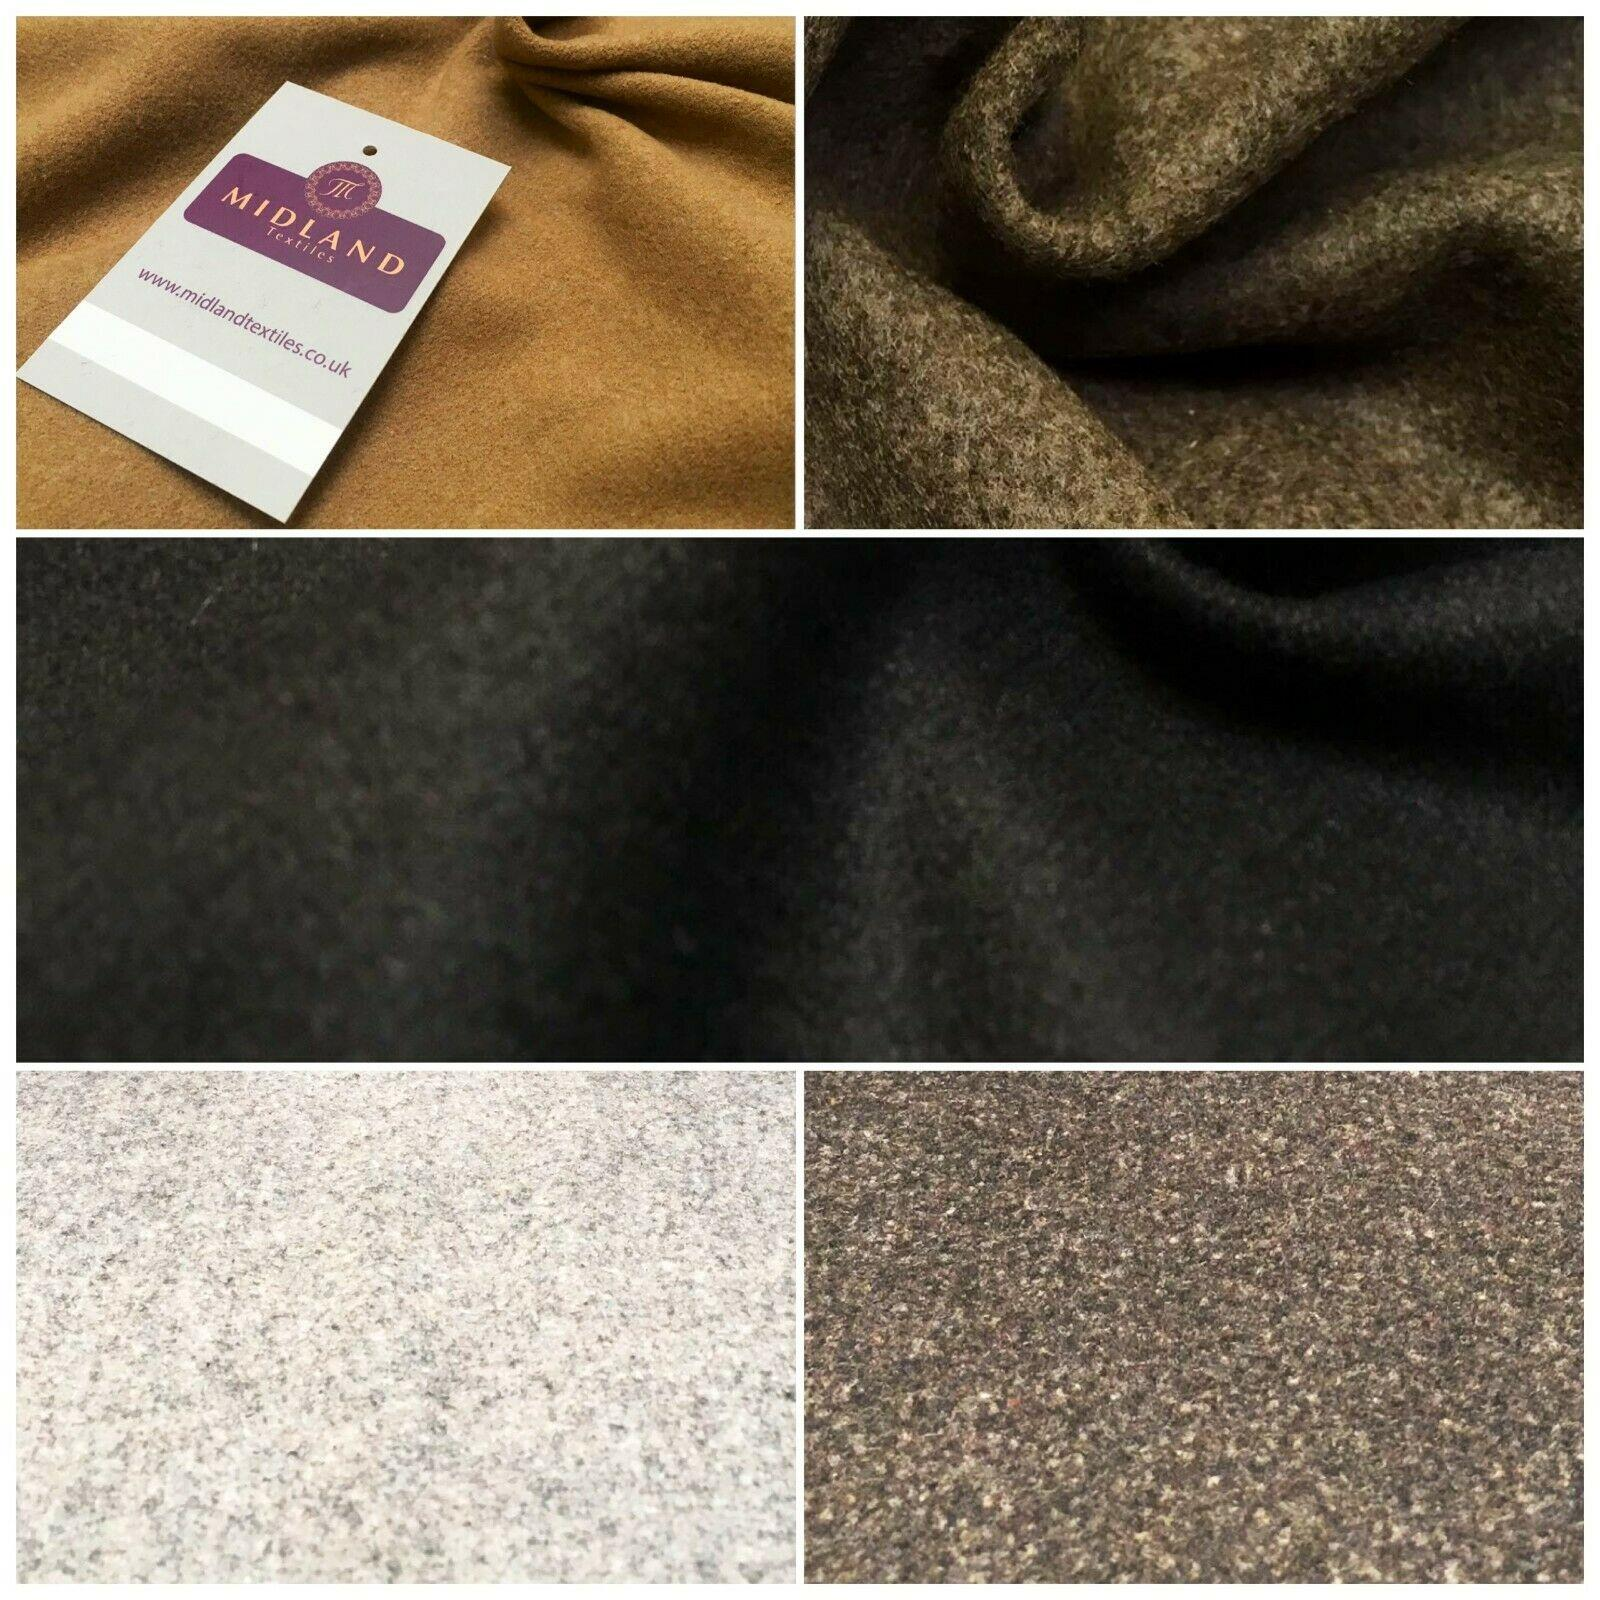 Plain Textured Melton Coating Wool Blend Fabric 139 cm MK1016 Mtex